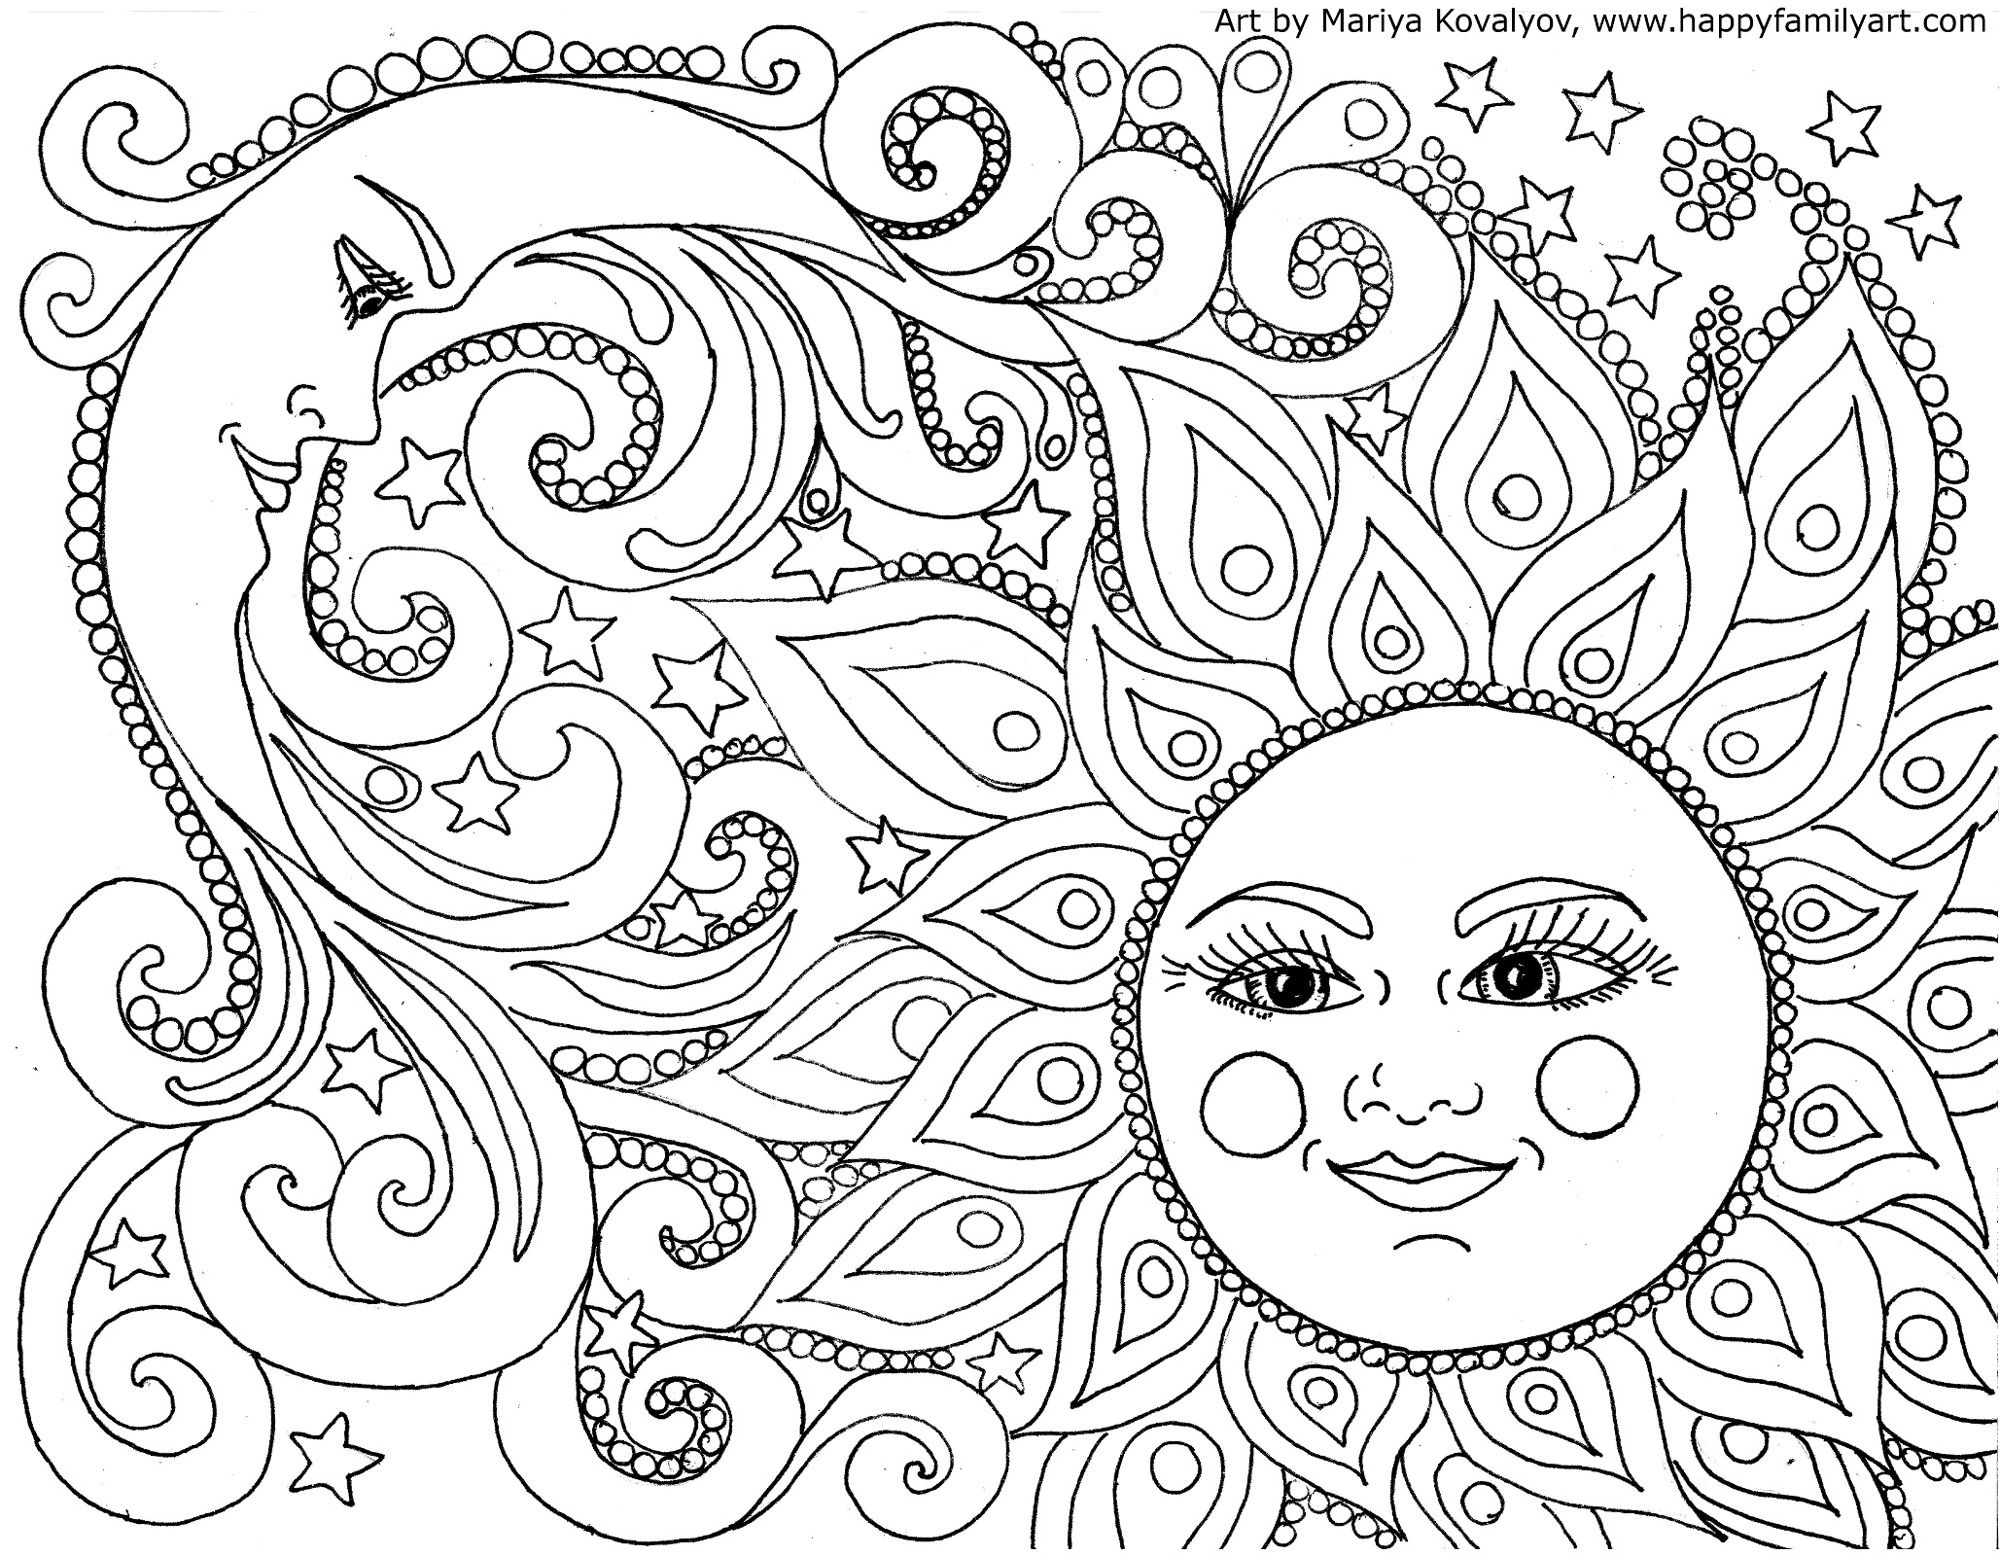 Adults colouring book pages - Free Adult Colouring Page Free Adult Coloring Page